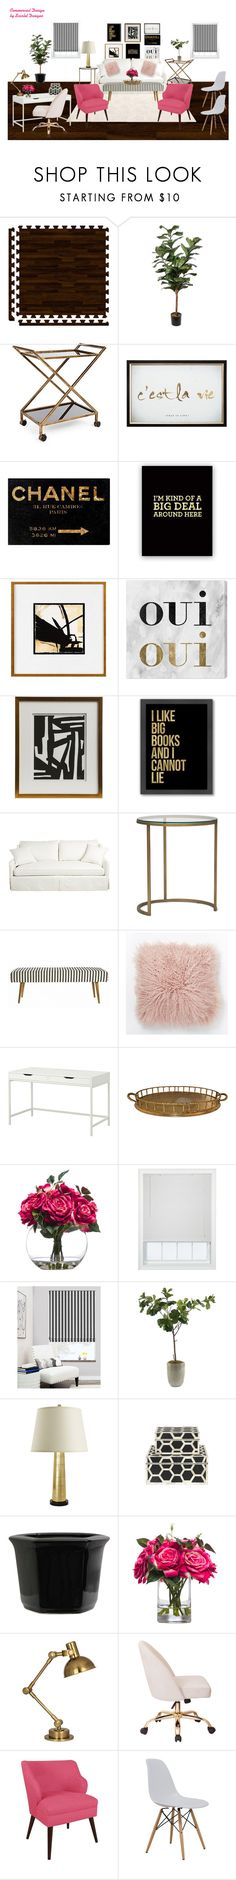 """""""Office - Pink"""" by scarlet-designs on Polyvore featuring interior, interiors, interior design, home, home decor, interior decorating, Oliver Gal Artist Co., Frontgate, Emporium Home and Americanflat"""